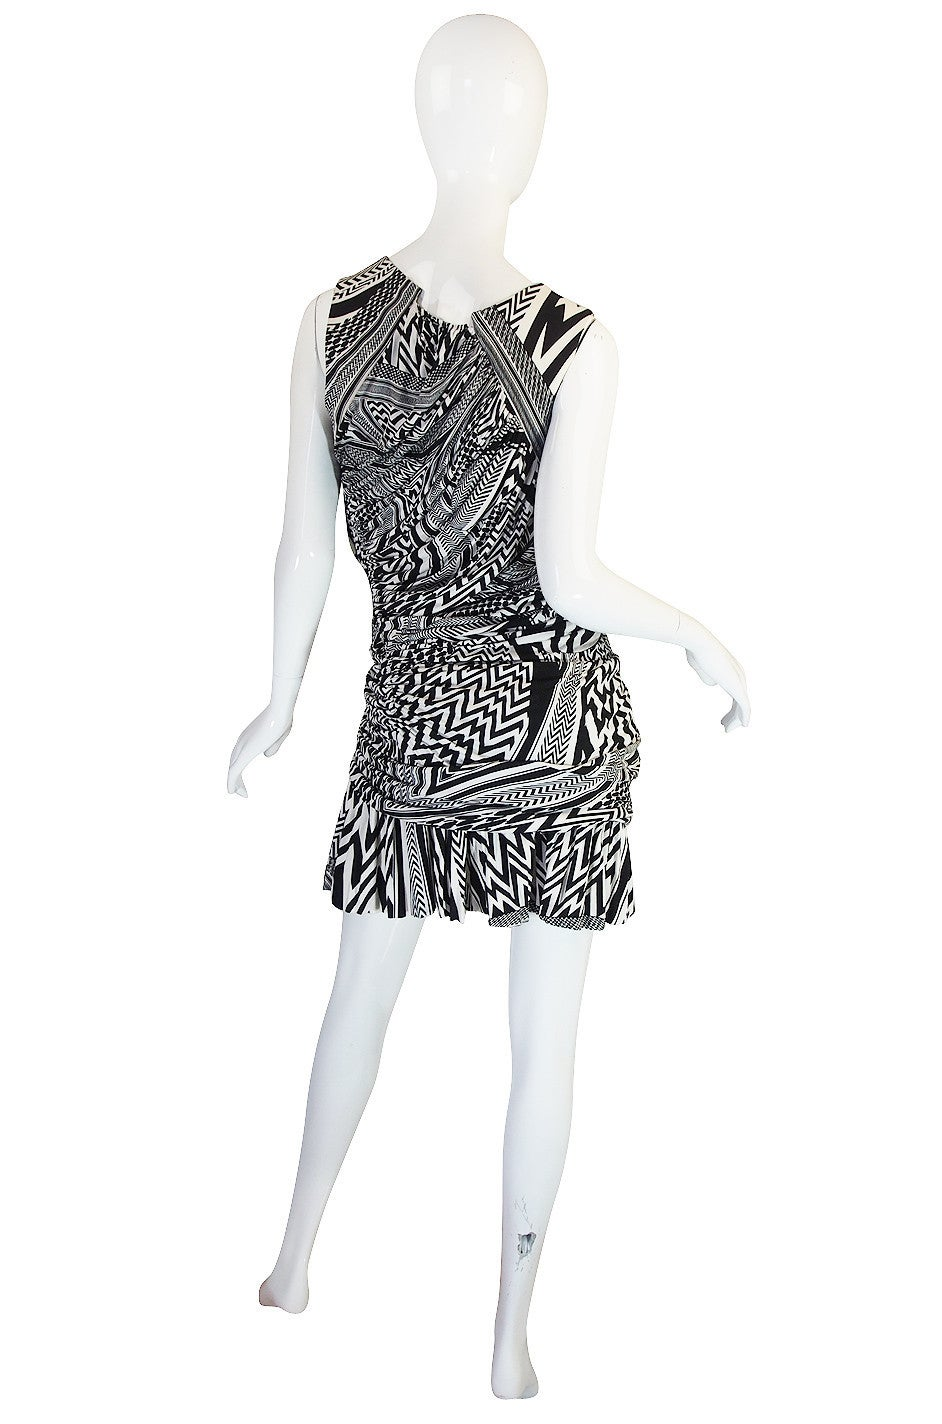 S/S 2010 Givenchy Tribal Print Mini Dress NWT 2